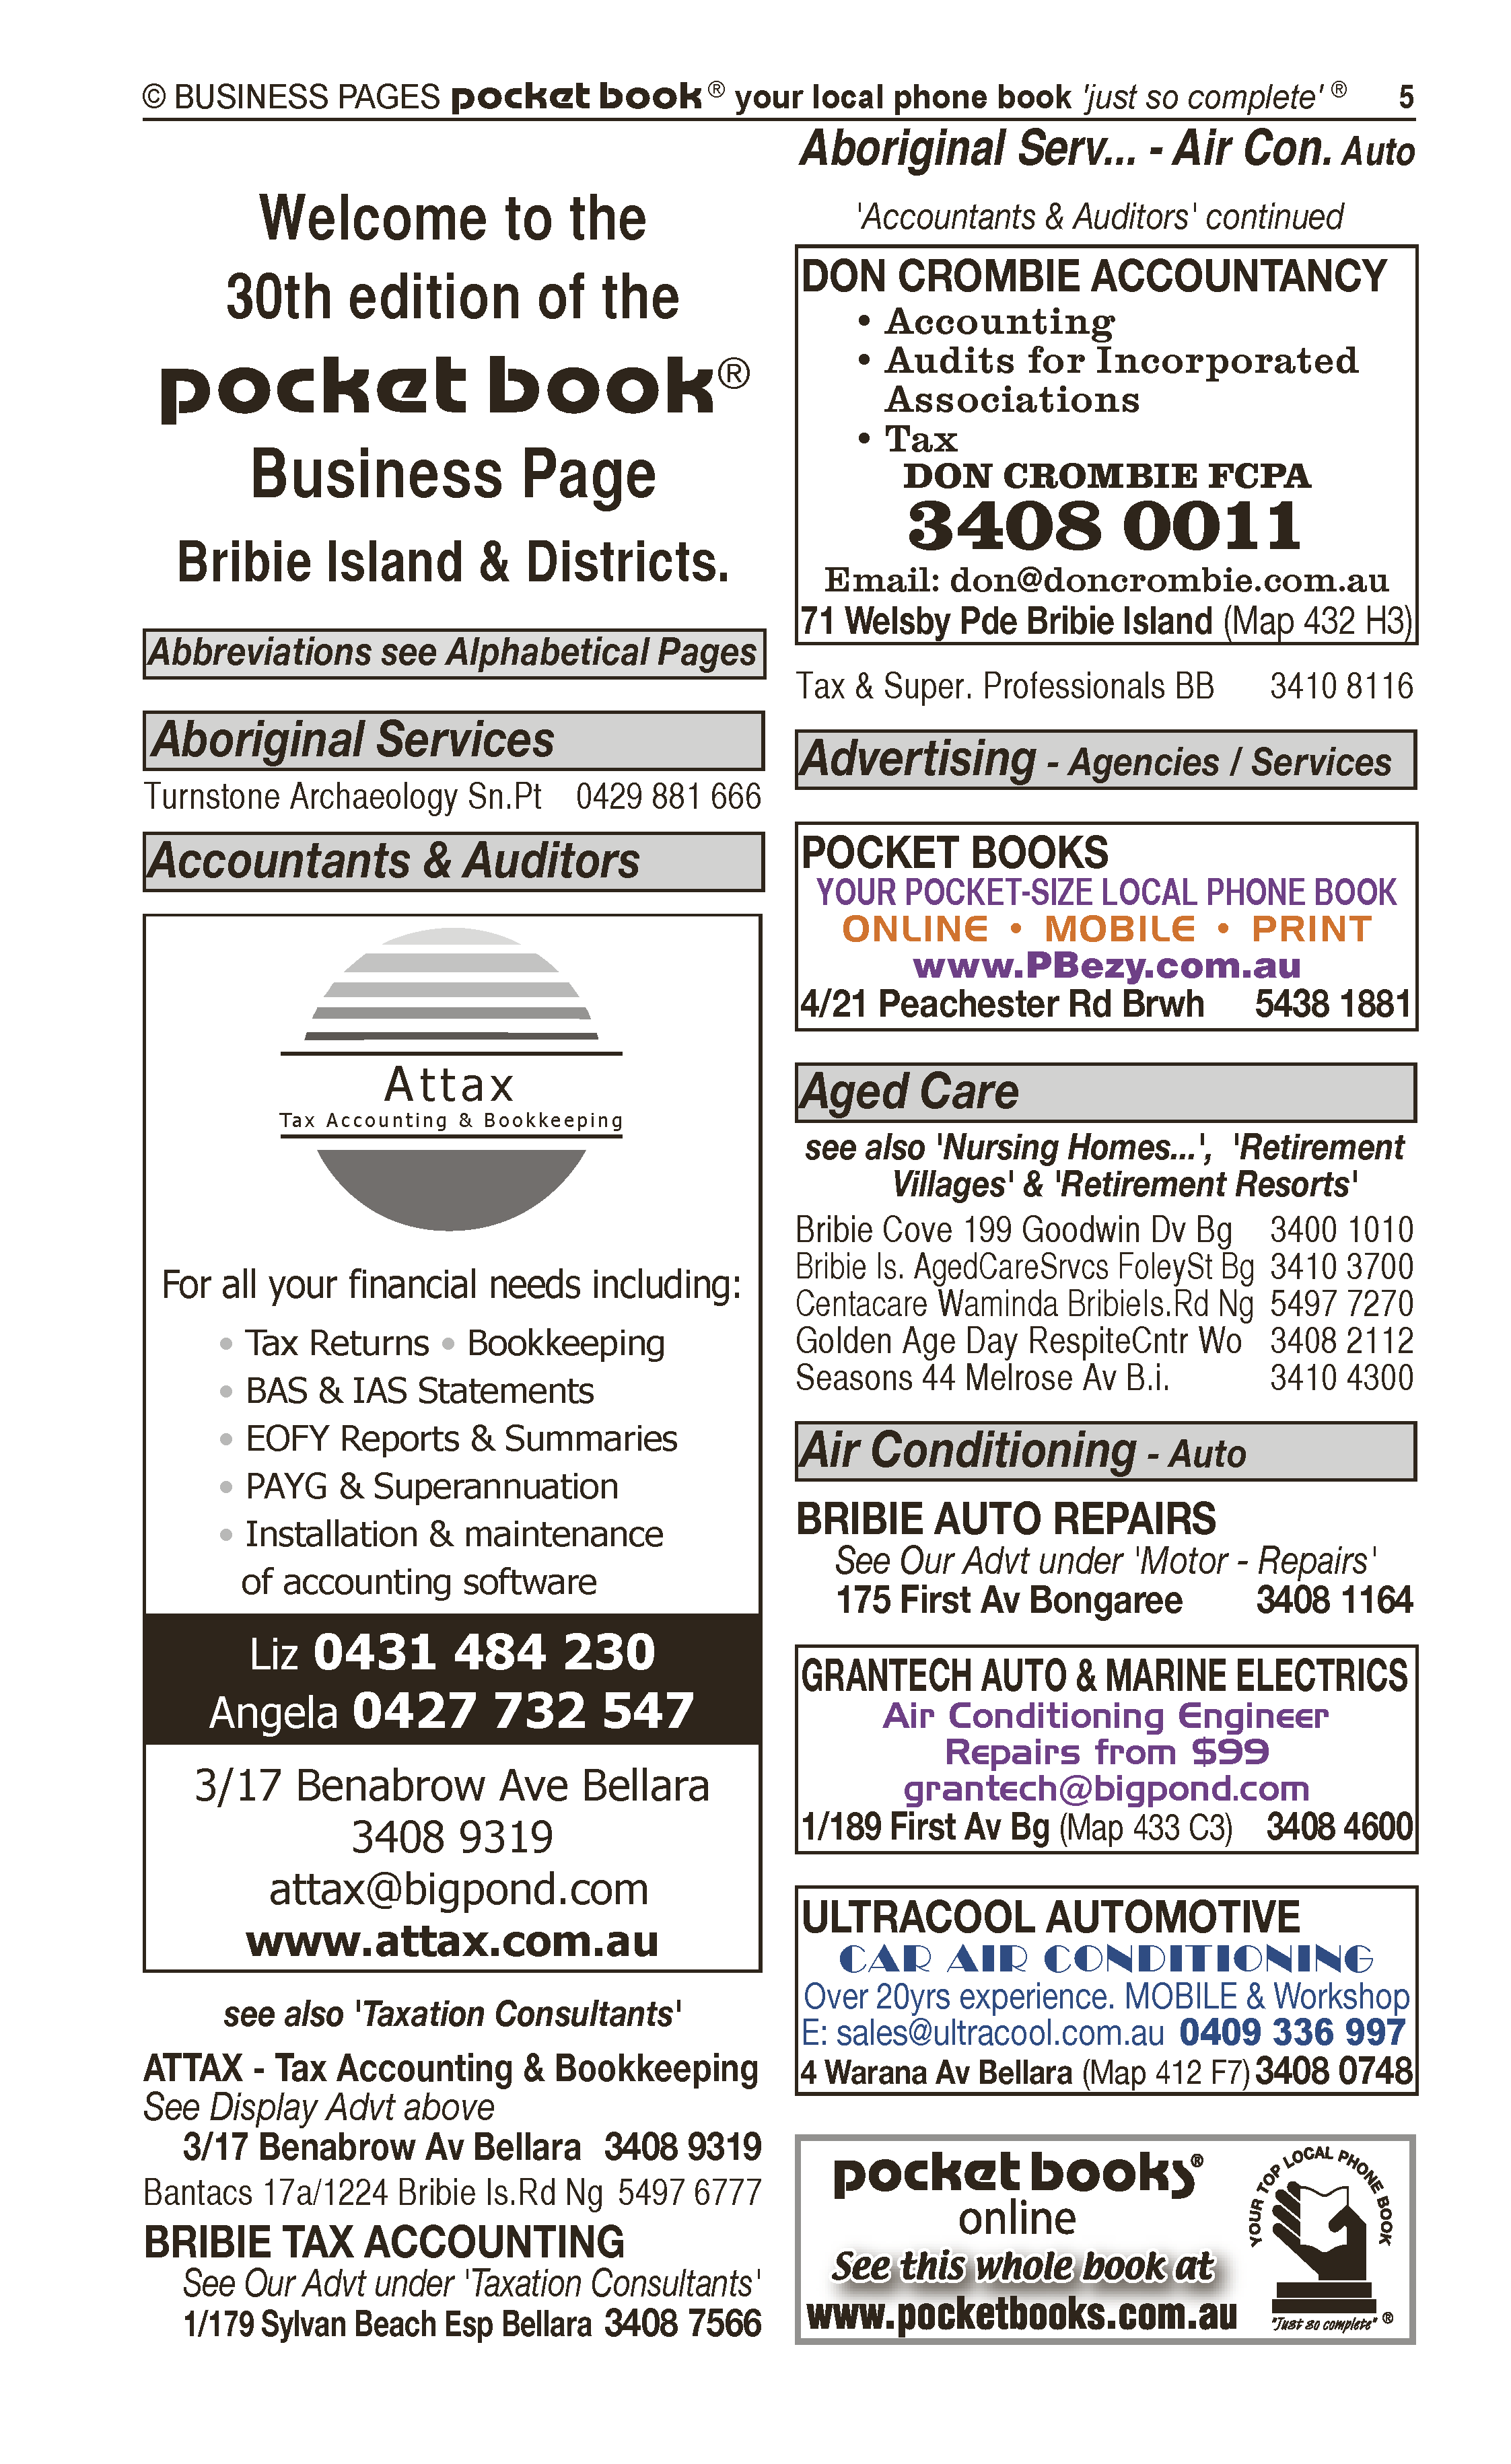 Don Crombie Accountancy | Auditors in Bribie Island | PBezy Pocket Books local directories - page 5